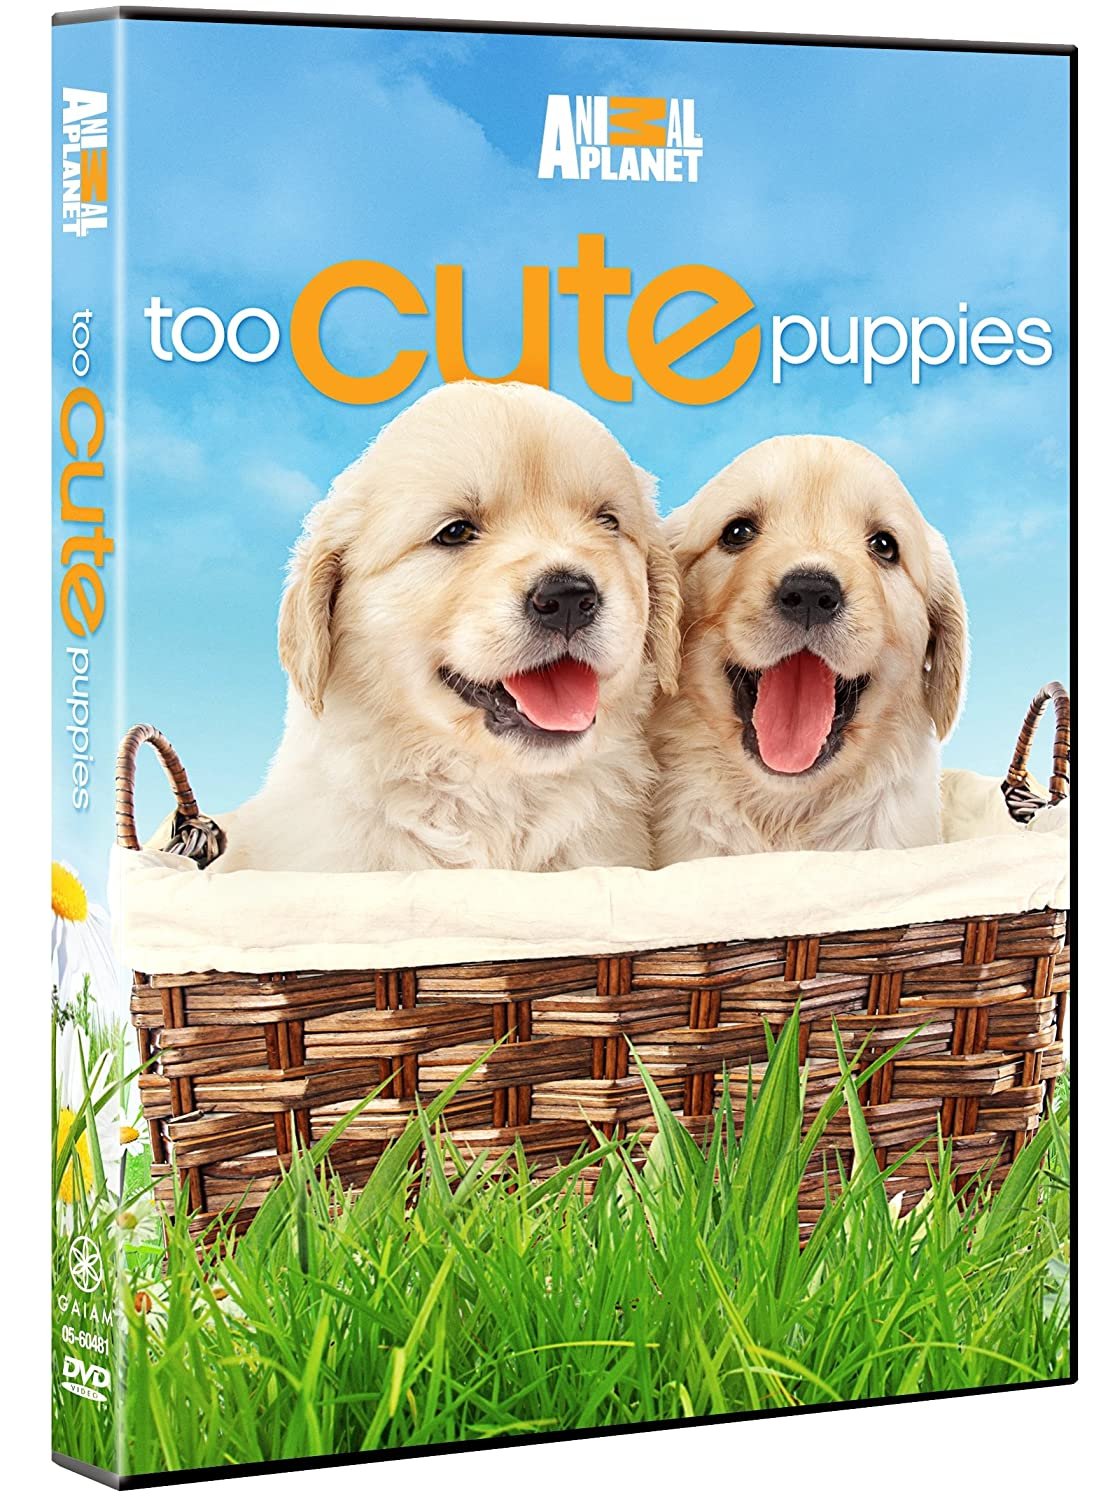 Amazon Com Too Cute Puppies Puppies Animal Planet Movies Tv